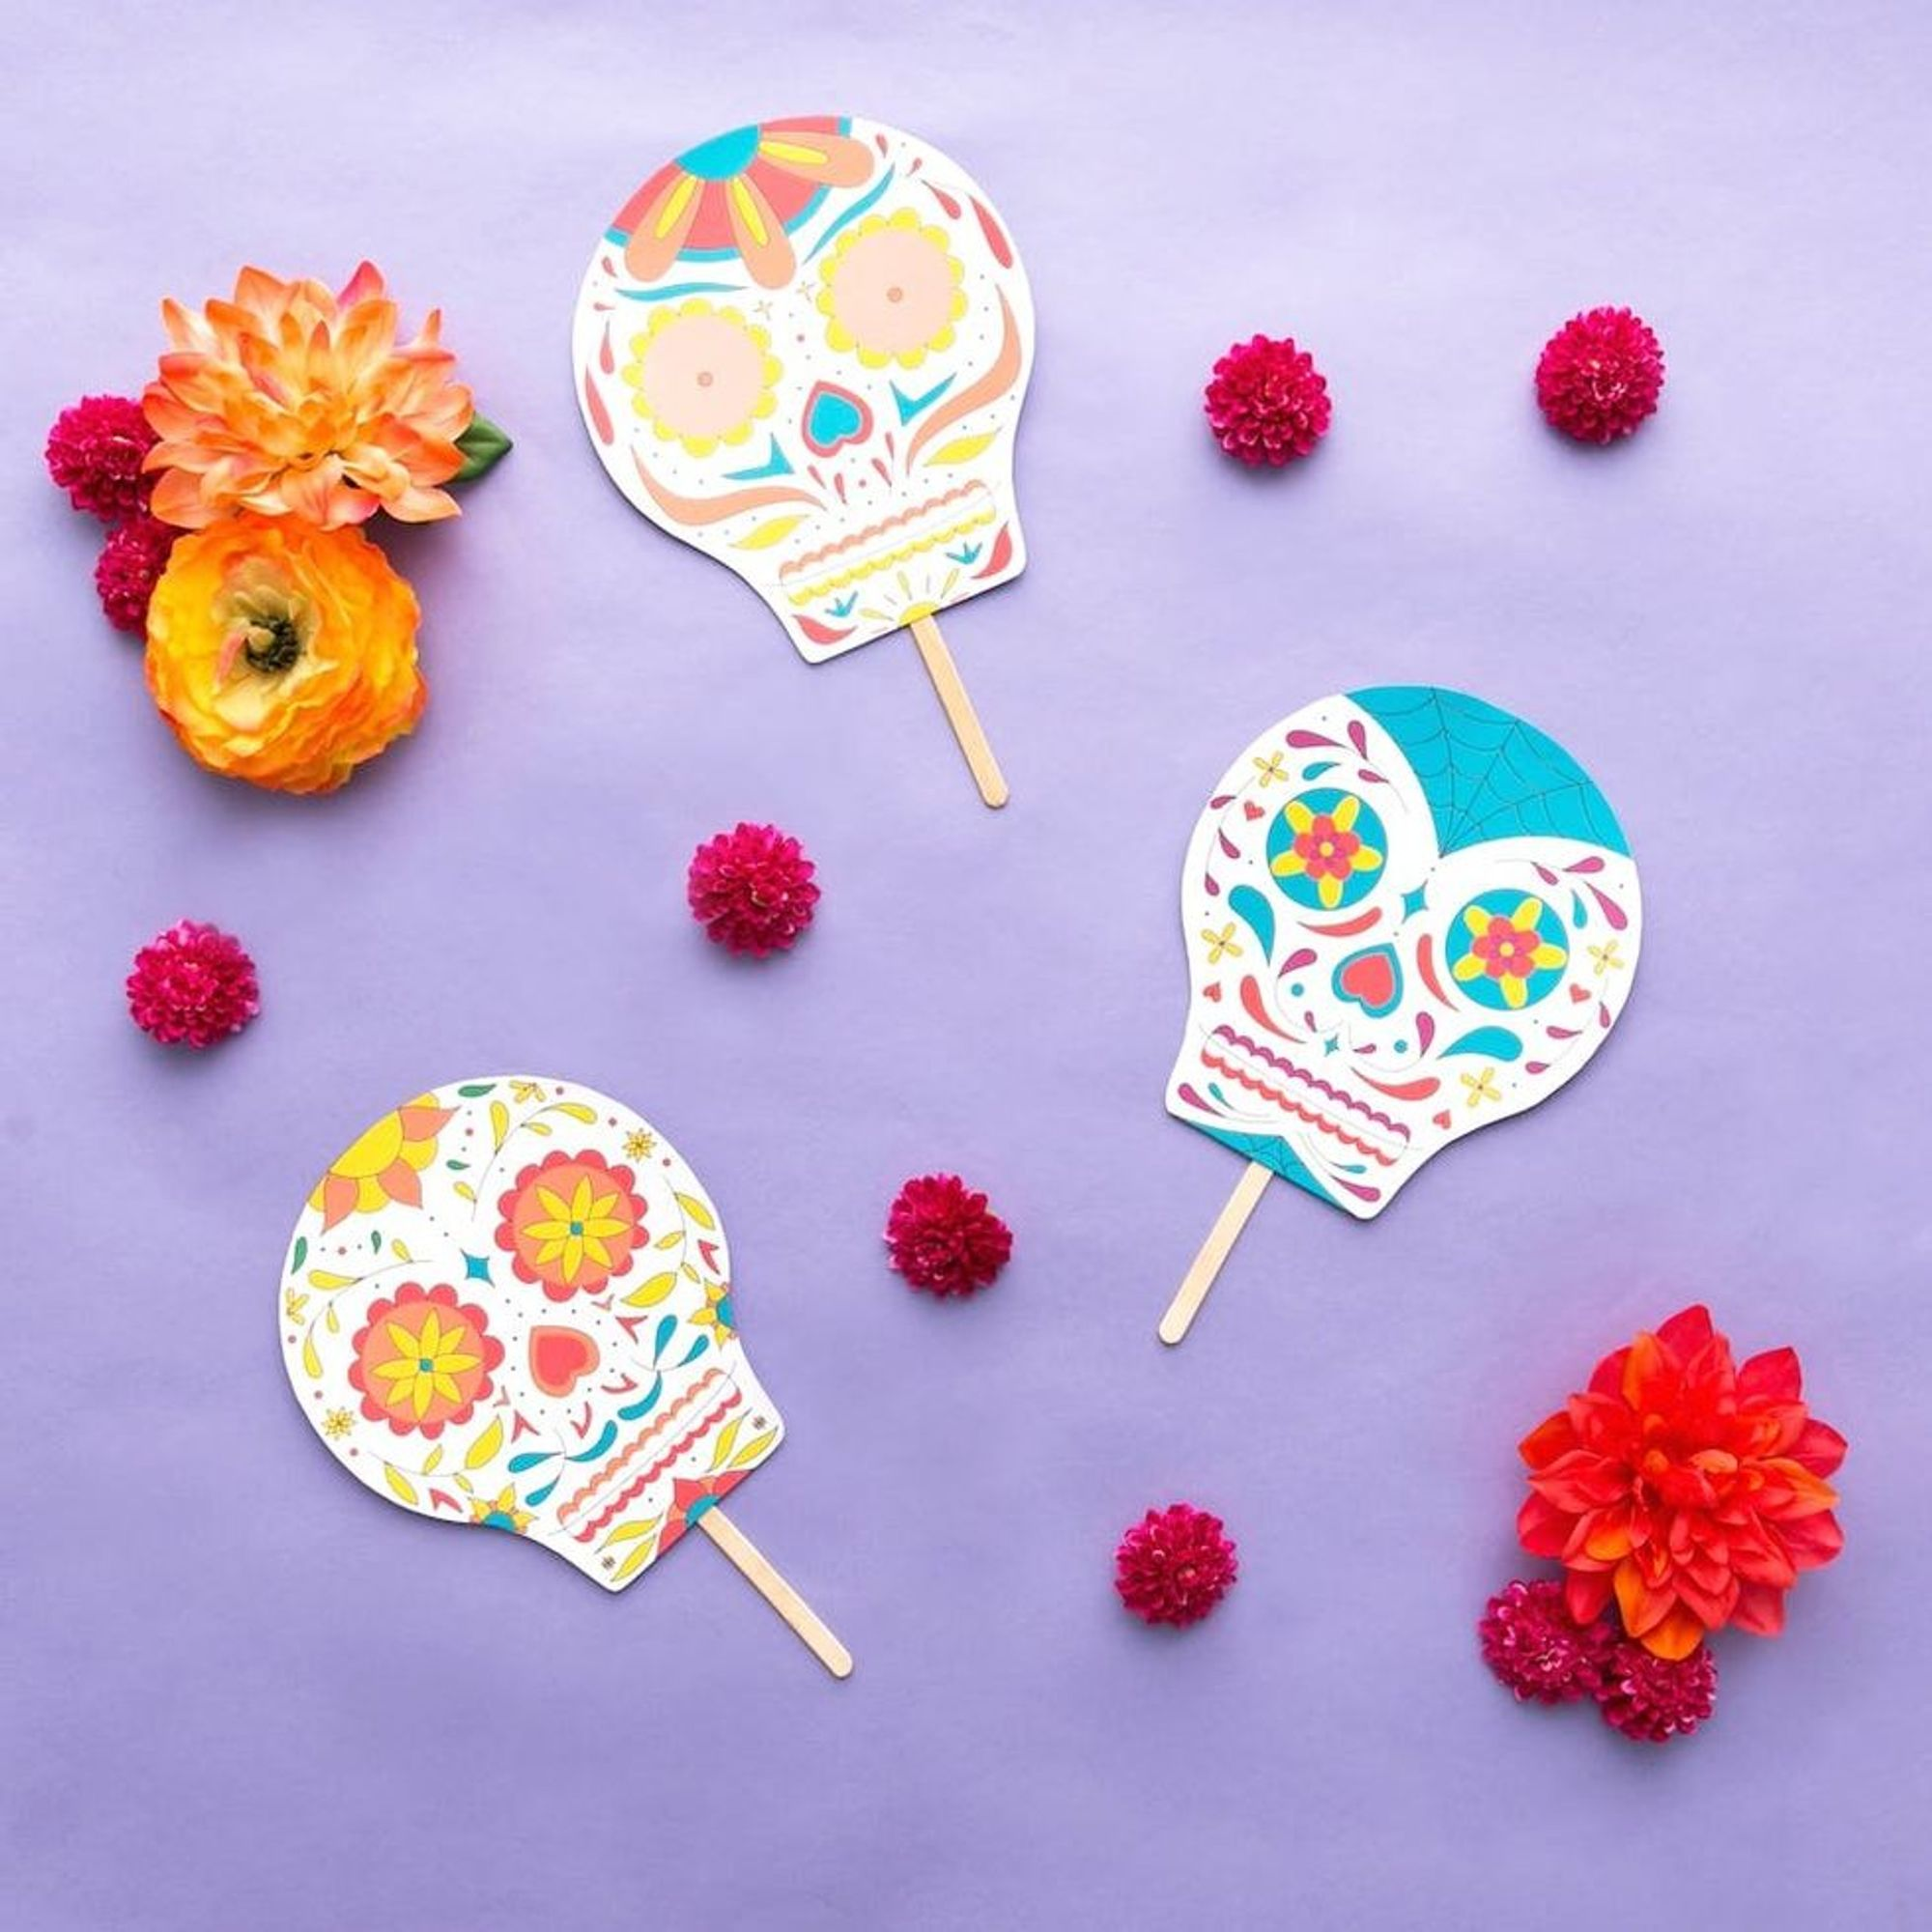 Free Printable Friday Dia De Los Muertos Sugar Skulls